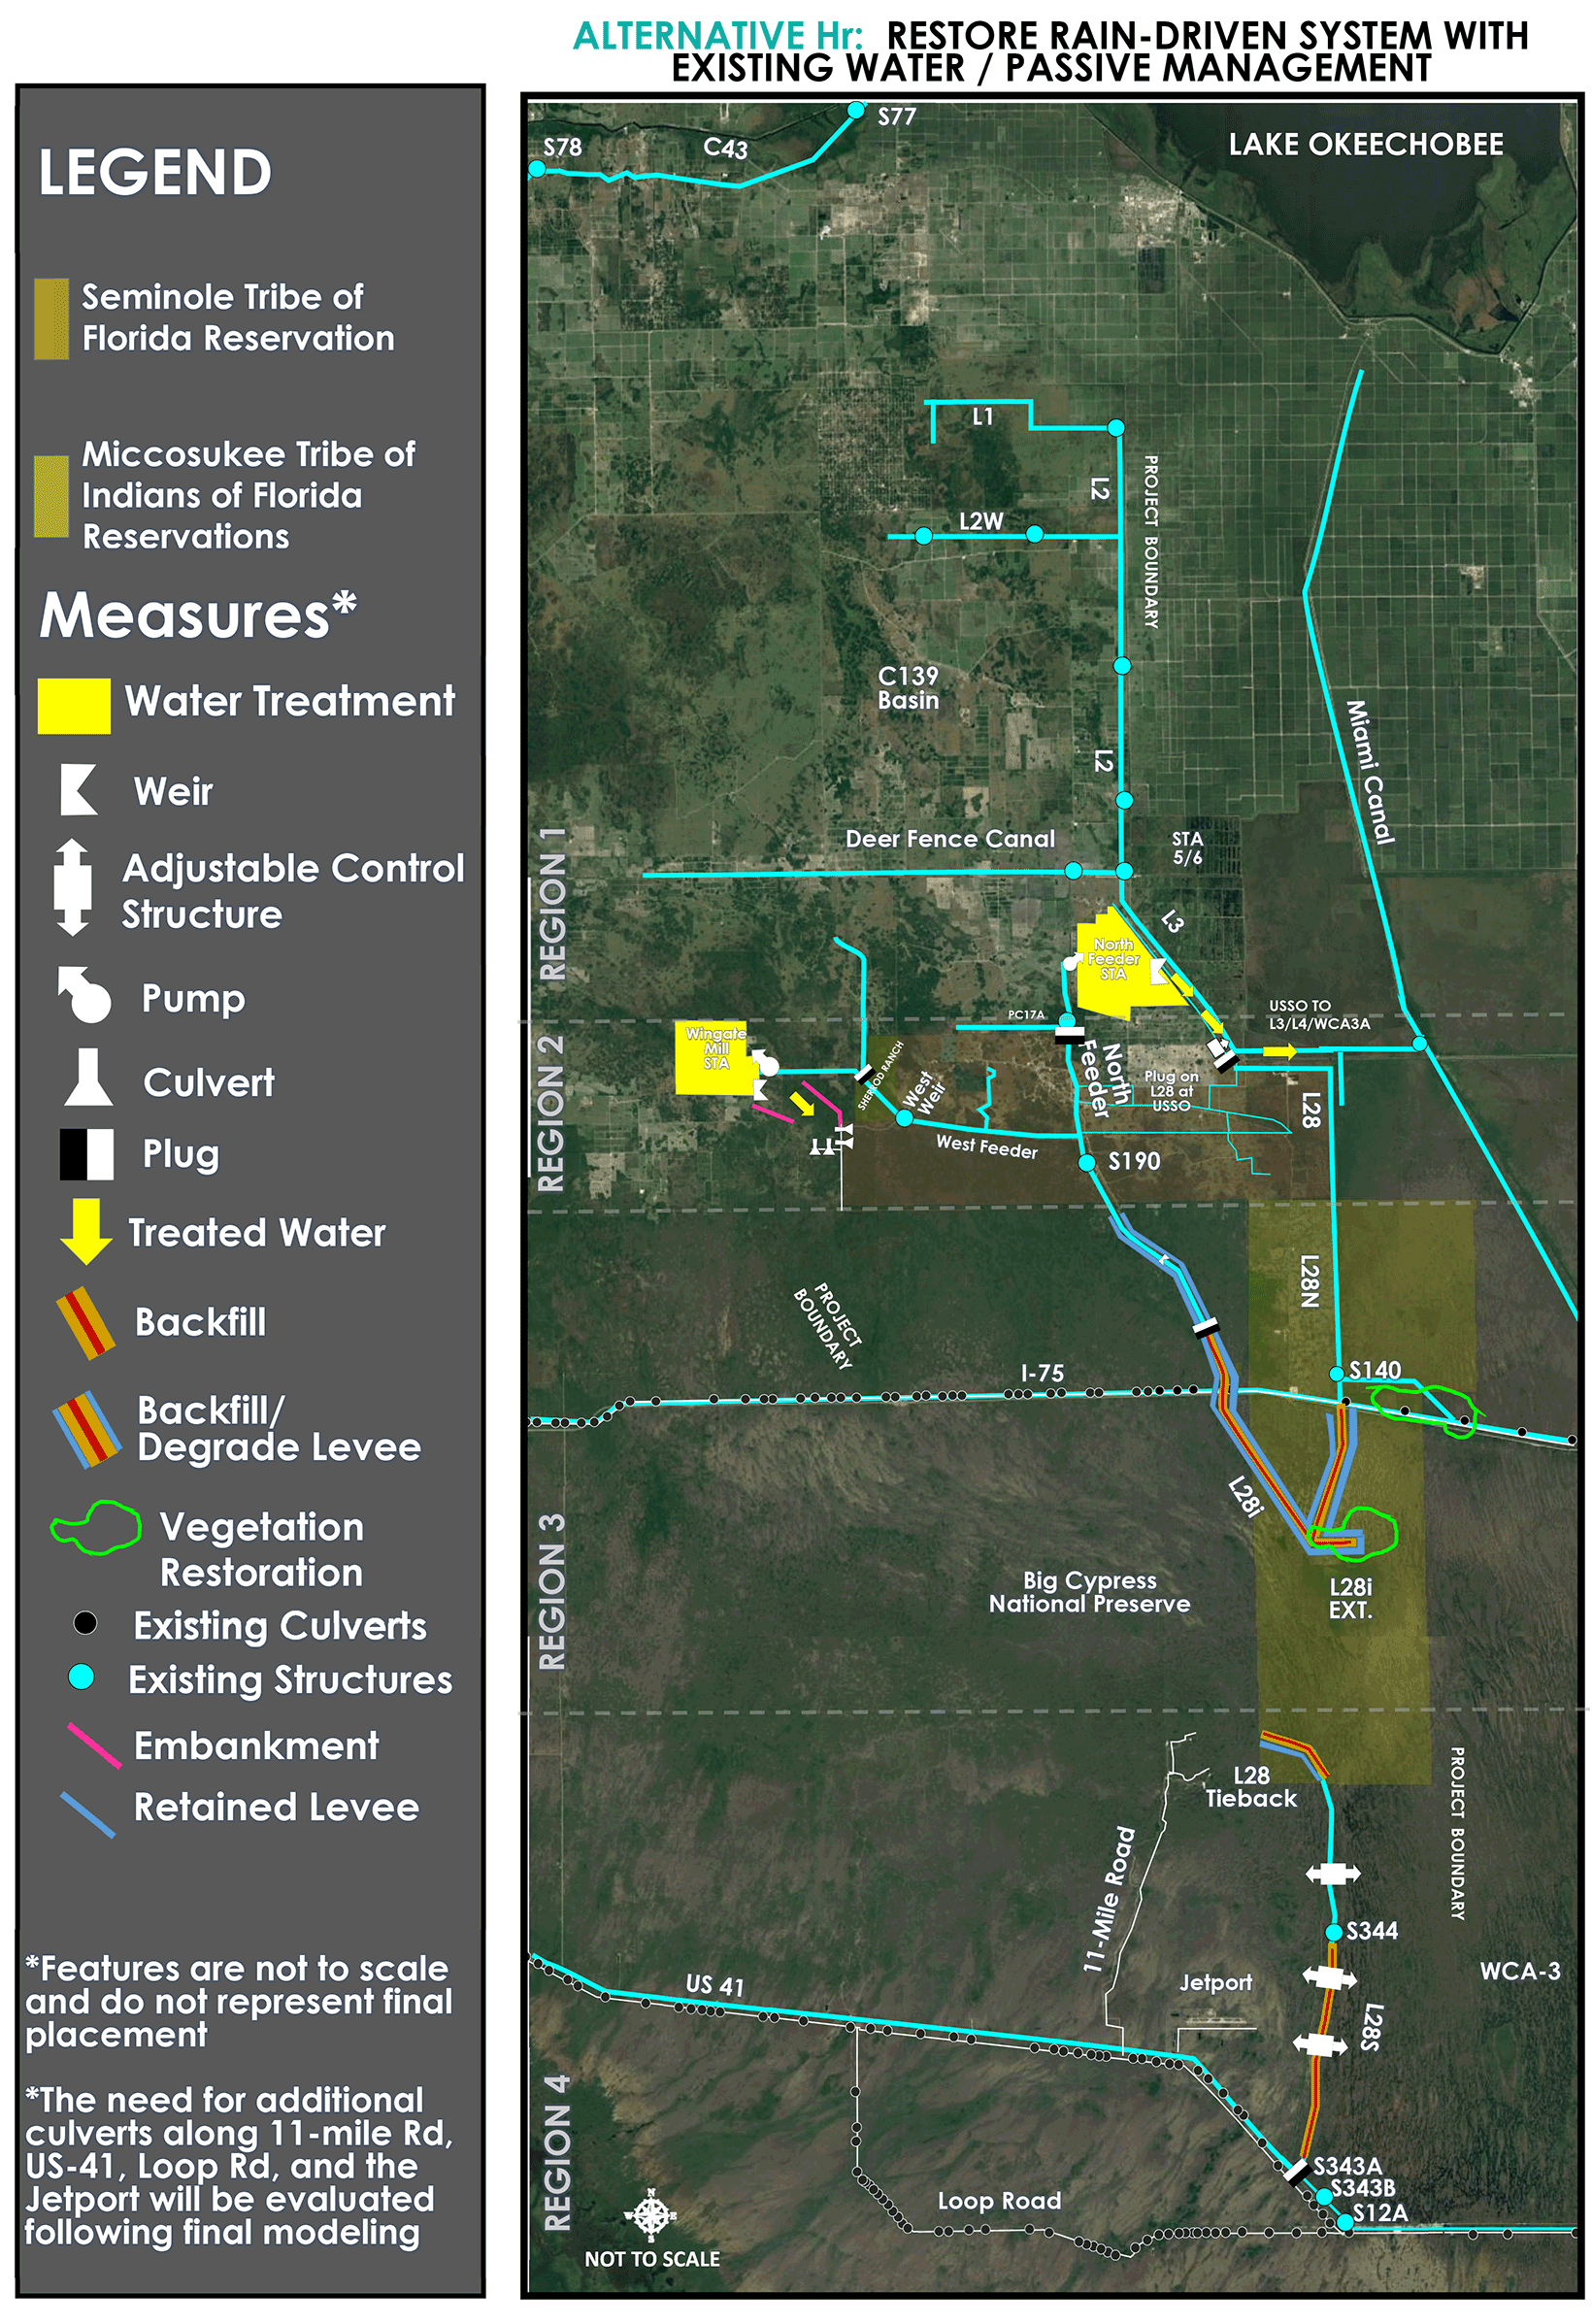 This map shows the WERP project area, with overlays indicating tribal lands of the Seminole and Miccosukee tribes, and proposed features and their locations in Alternative Hr, the tentatively selected plan. Features are not to scale, and do not represent final placement. The need for additional culverts along 11-Mile road, US-41, Loop Road, and the Jetport will be evaluated following final modeling.